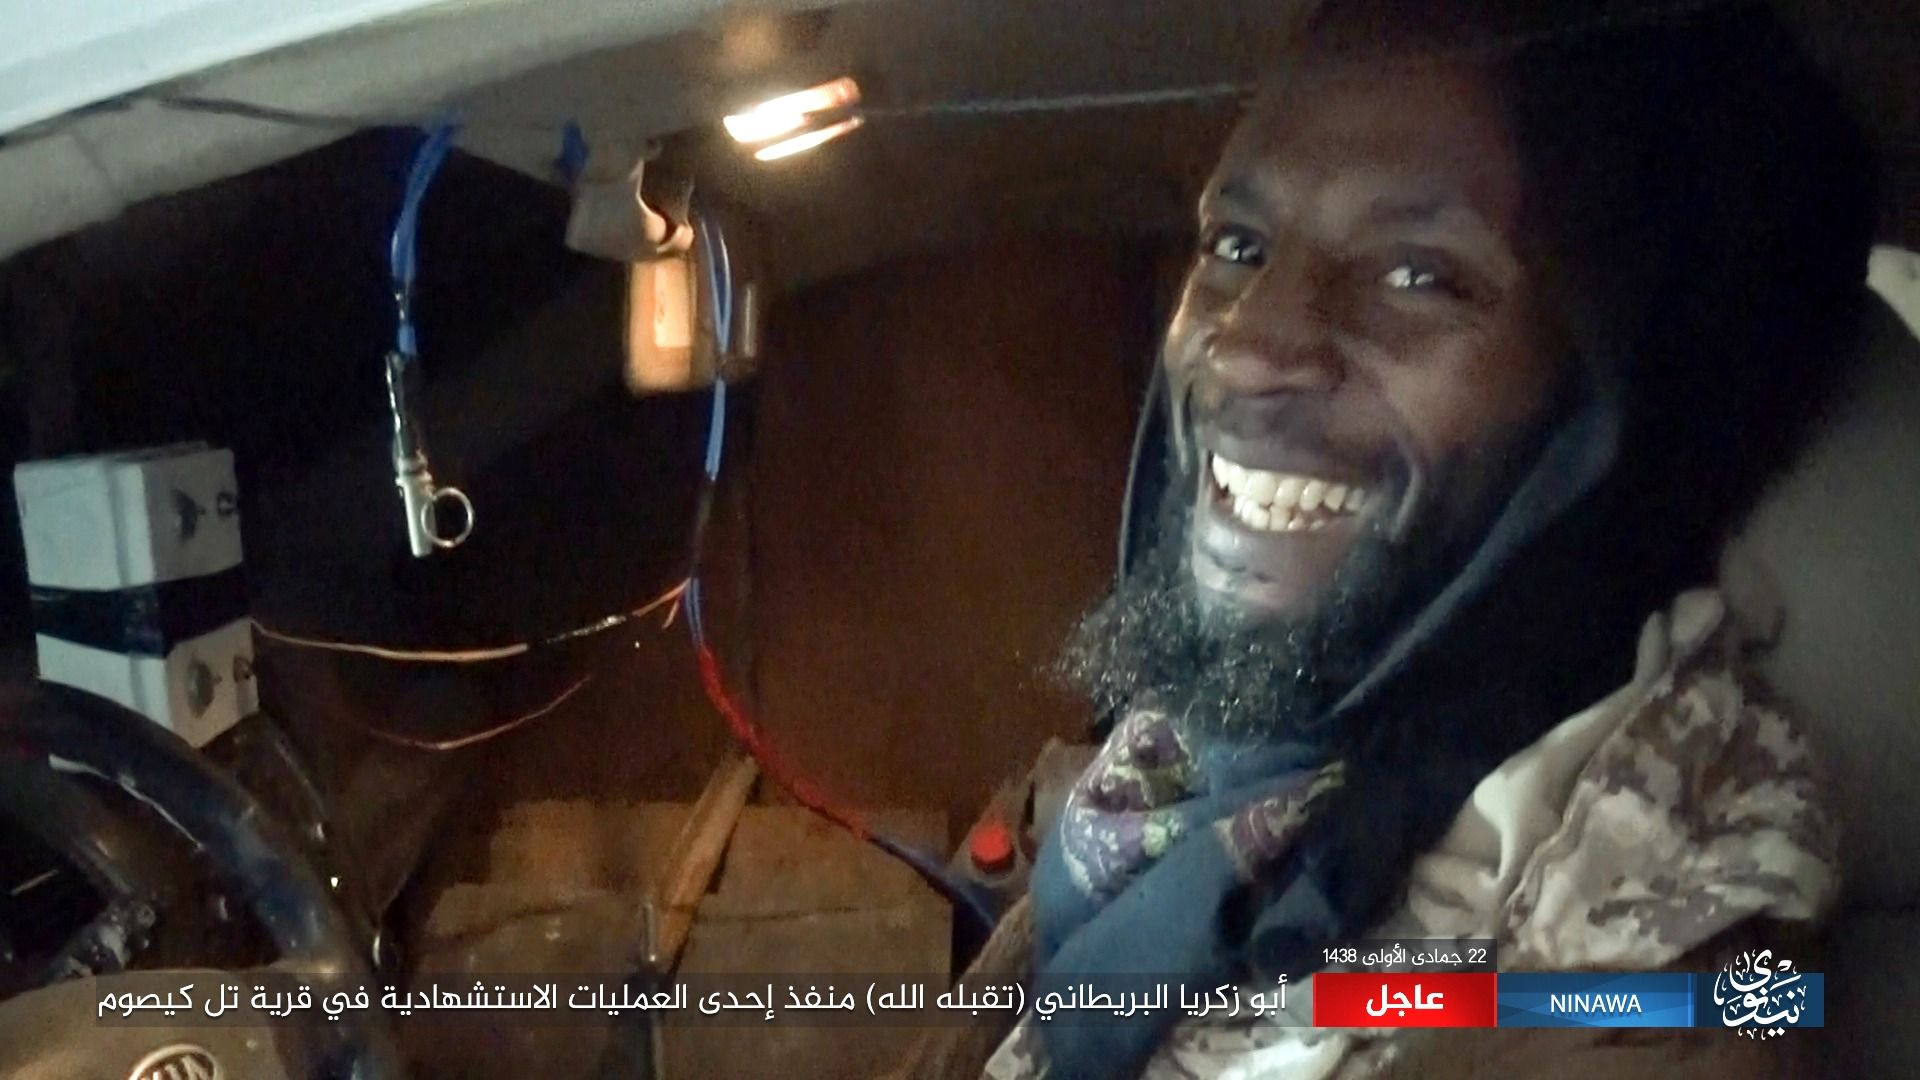 This militant photo released by Ninawa State ? a media arm of the Islamic State group on Tuesday, Feb. 21, 2017 shows Abu Zakariya al-Britani, suicide bomber who attacked a military base in Iraq this week who was a former Guantanamo Bay detainee freed in 2004 after Britain lobbied for his release. The Islamic State group identified the bomber as Abu Zakariya al-Britani and two British security officials also confirmed the man featured in the Islamic State group video was a 50-year-old formerly Briton formerly known as Ronald Fiddler and as Jamal al-Harith. (Ninawa State via AP)